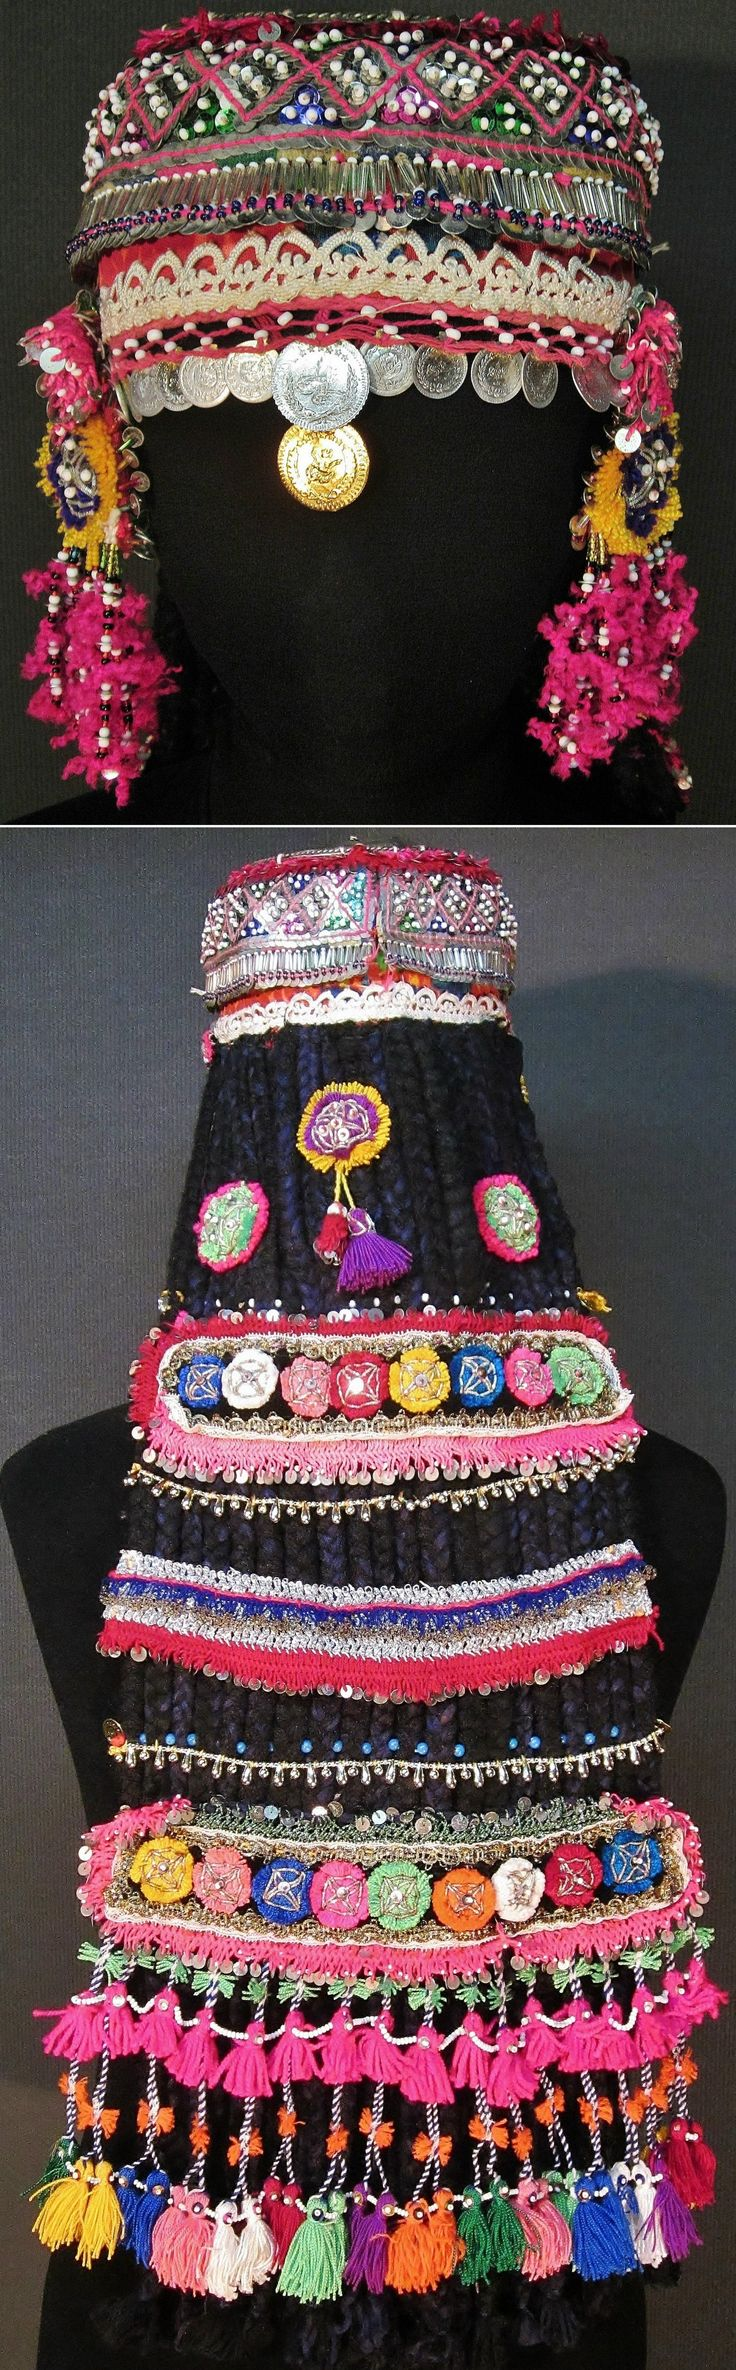 A traditional festive headgear for 'genç kız' (= not yet betrothed girls). From the Pomak villages near Biga (Çanakkale prov.), mid-20th c. The cap is adorned with metal sequins, glass beads, metal (imitation) Ottoman coins, (cotton or orlon) pom-poms. Characteristic for the headgear is the lavishly adorned 'imitation hair' (black cotton plaits, attached to the back of the hat). (Inv.nr. ba$034 - Kavak Costume Collection - Antwerpen/Belgium).